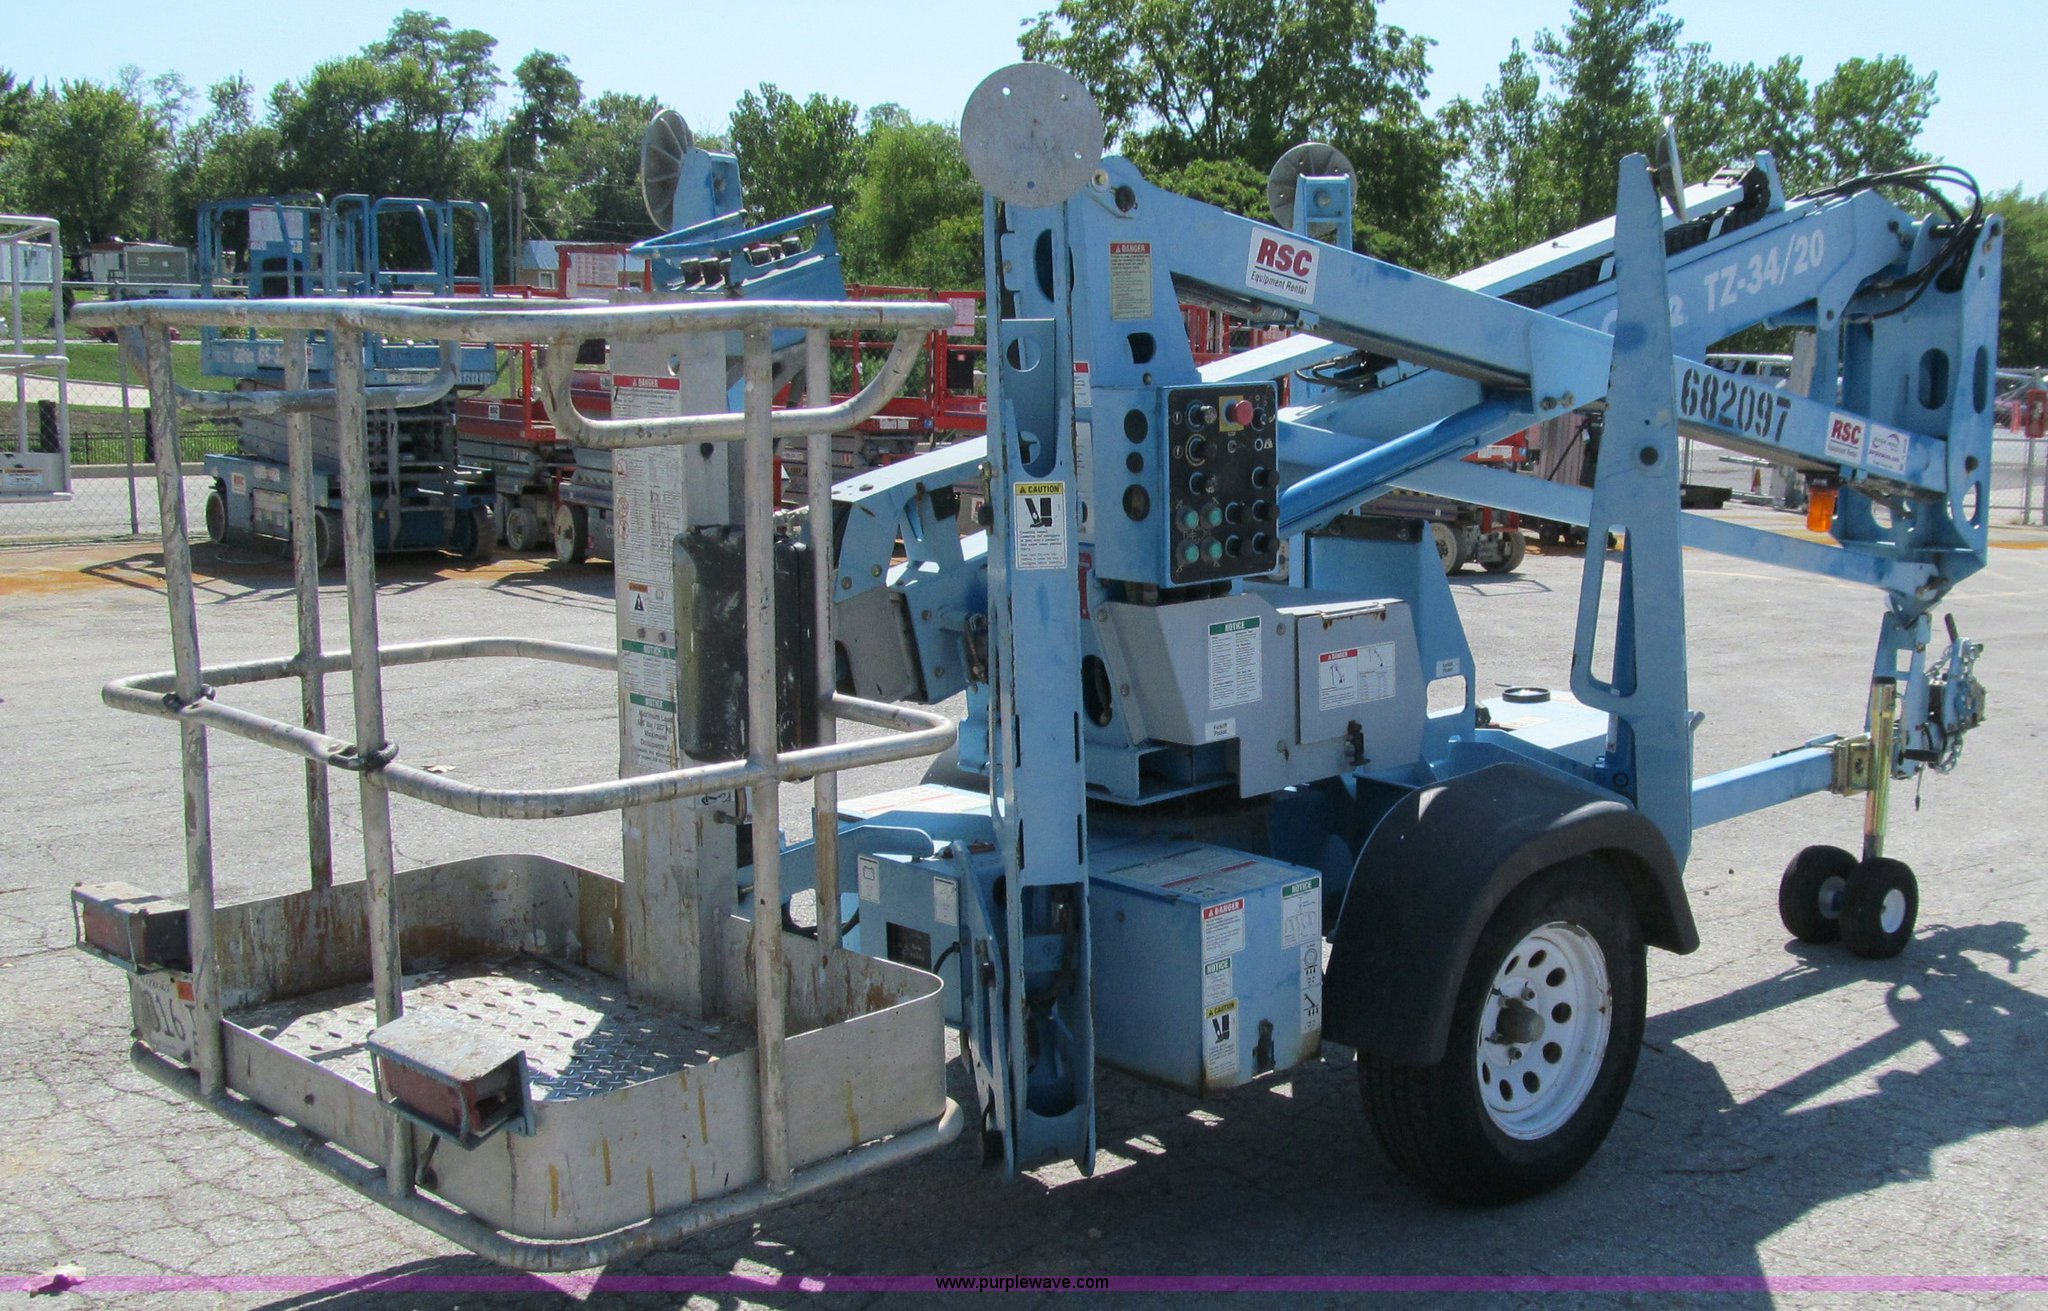 2007 Genie Tz 34 20 Towable Boom Lift Item A8458 Sold T Wiring Diagram For Full Size In New Window